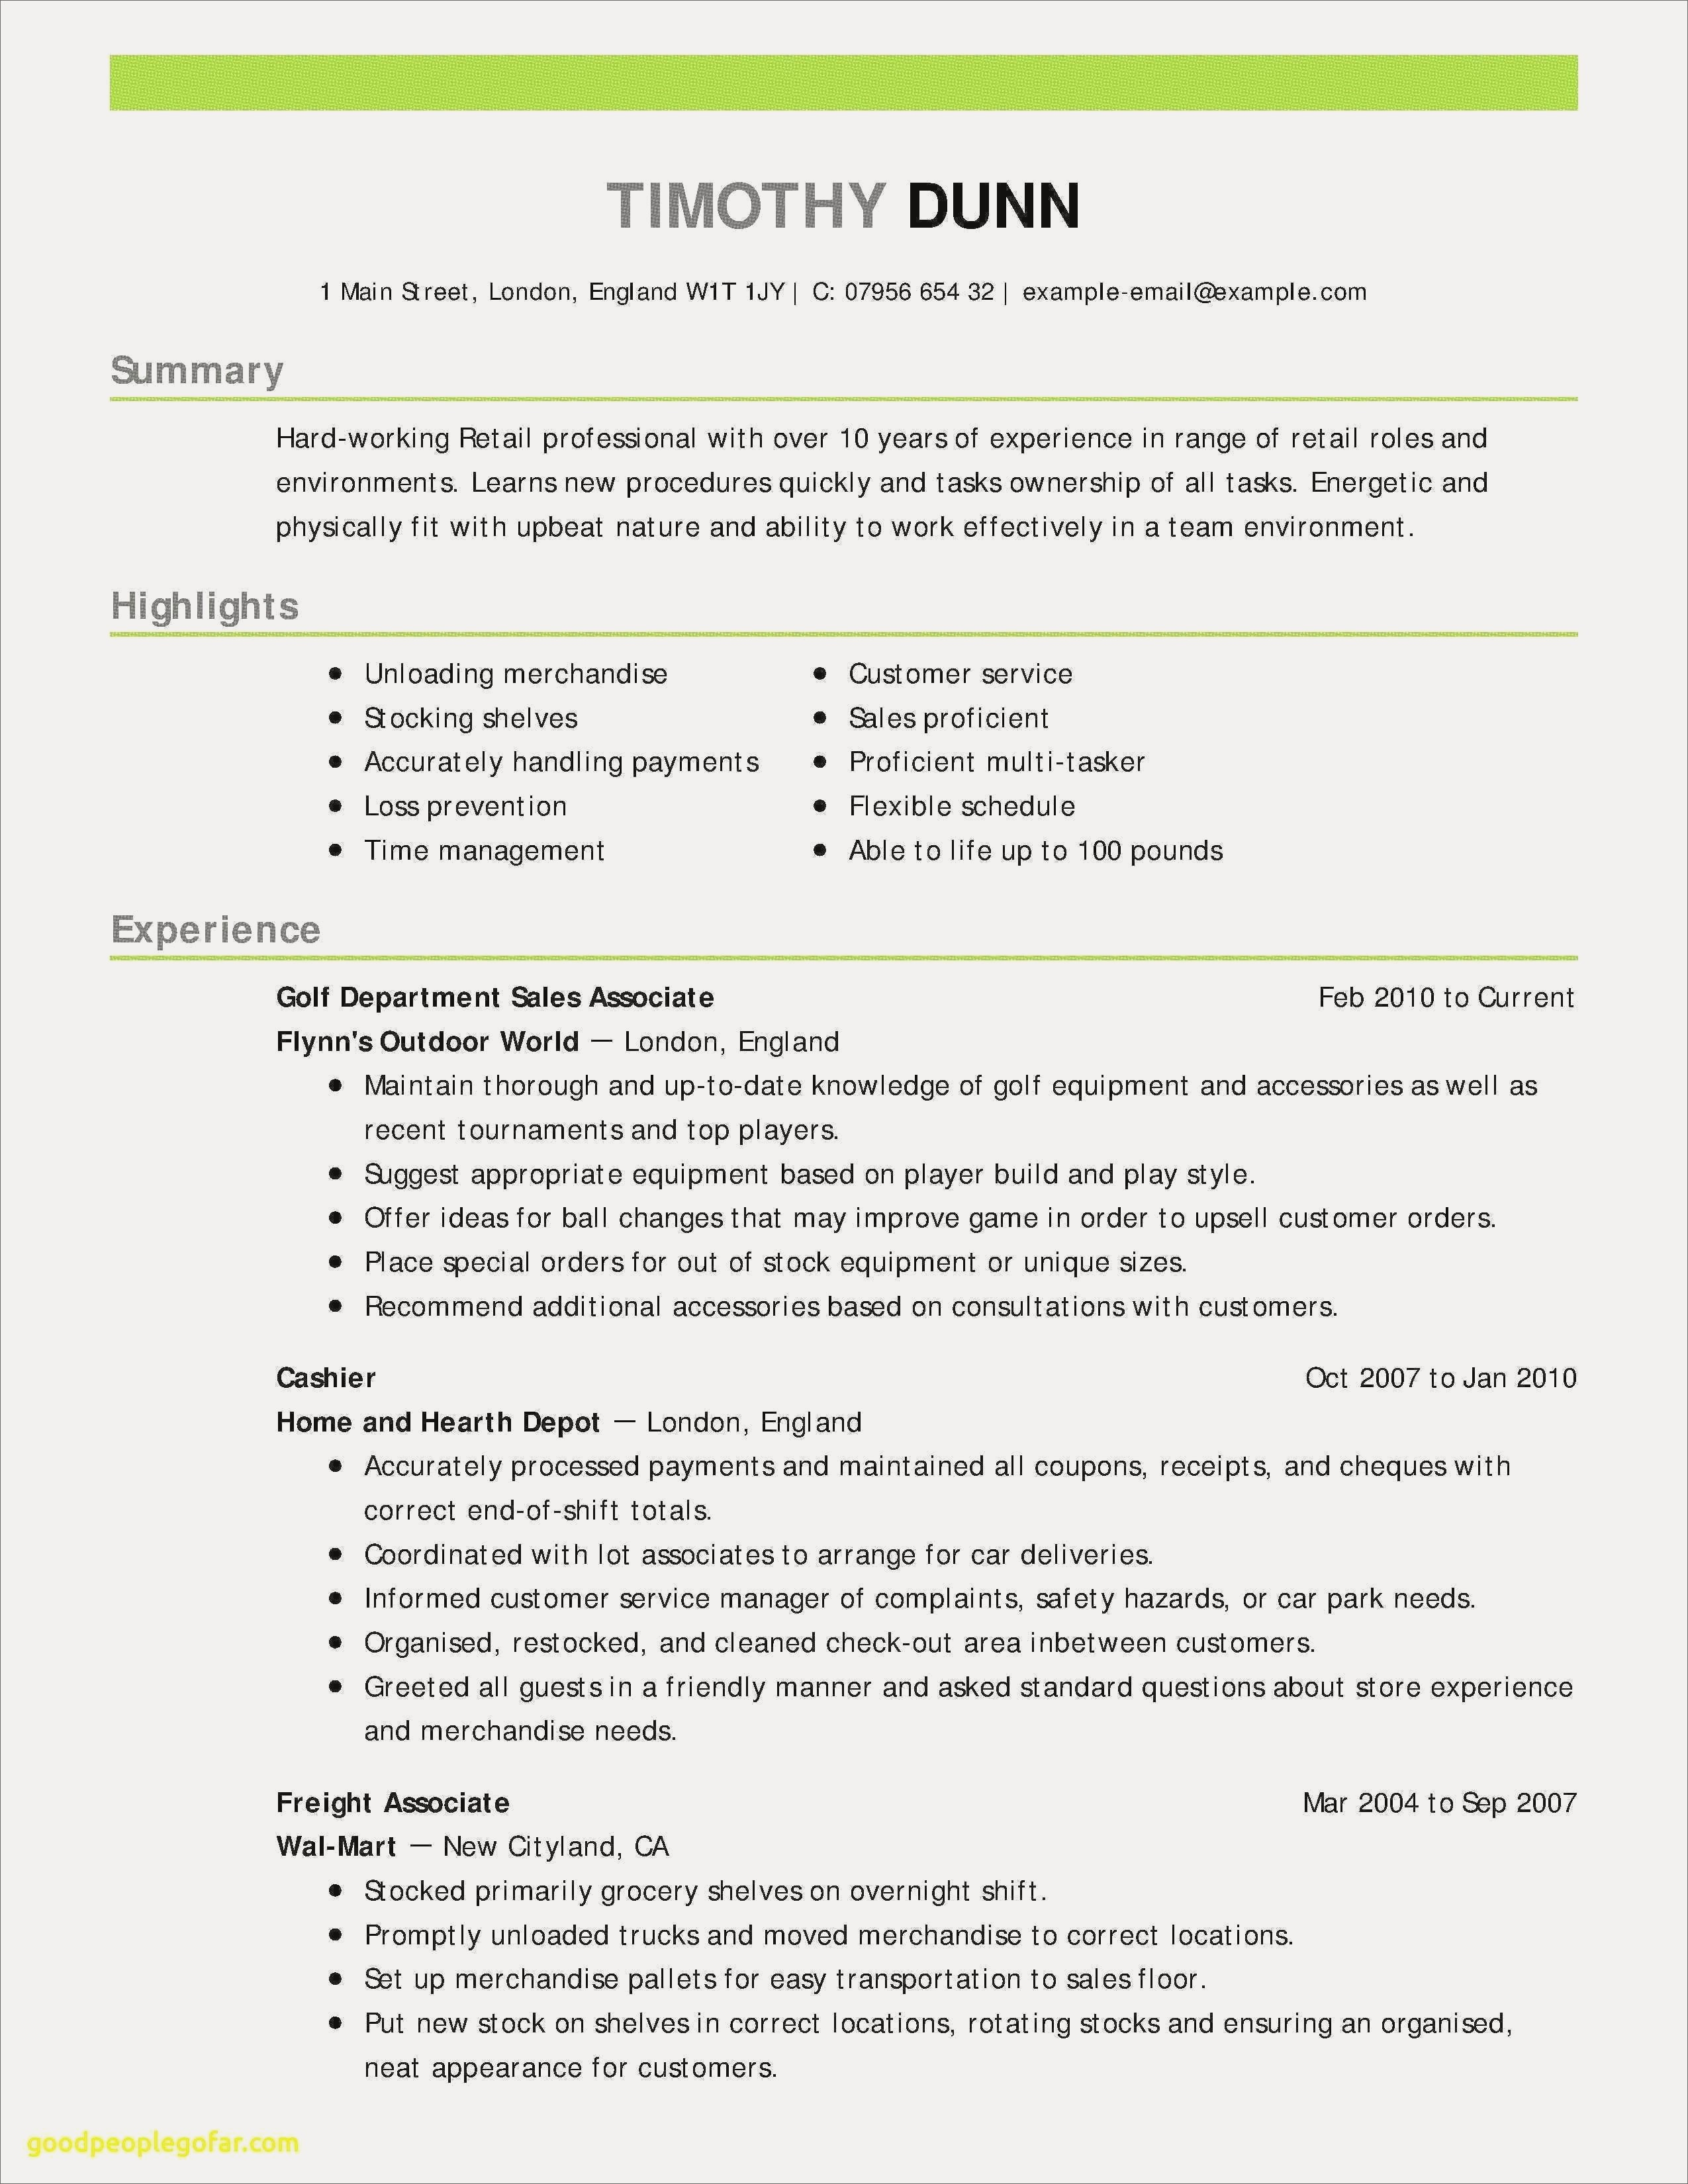 Professional Resume Sample - Valet Parking Resume Sample Refrence Customer Service Resume Sample